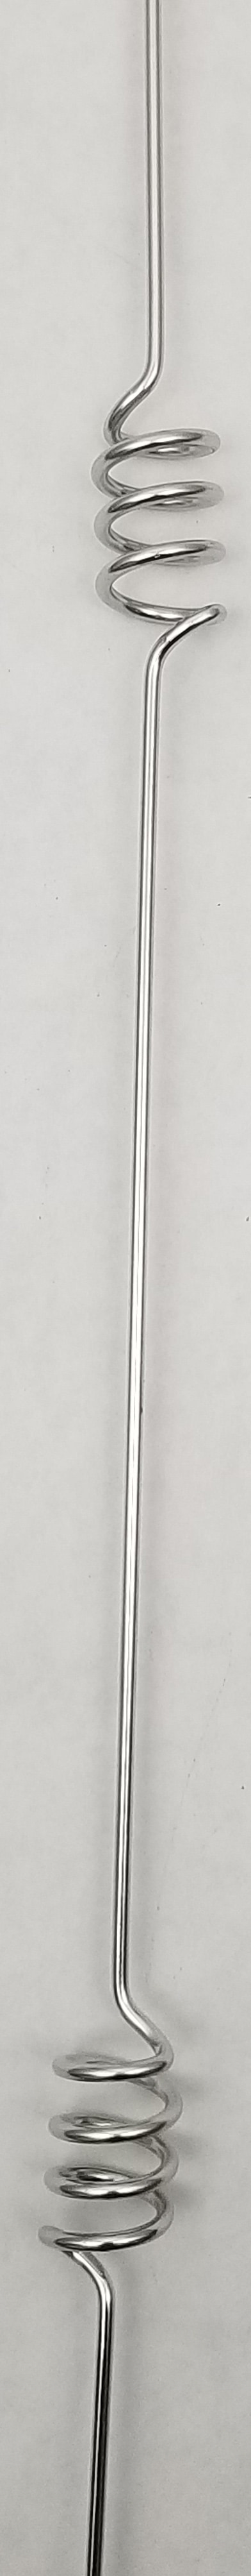 MUB8105 - Maxrad 806-866Mhz 5Db Replacement Rod Only